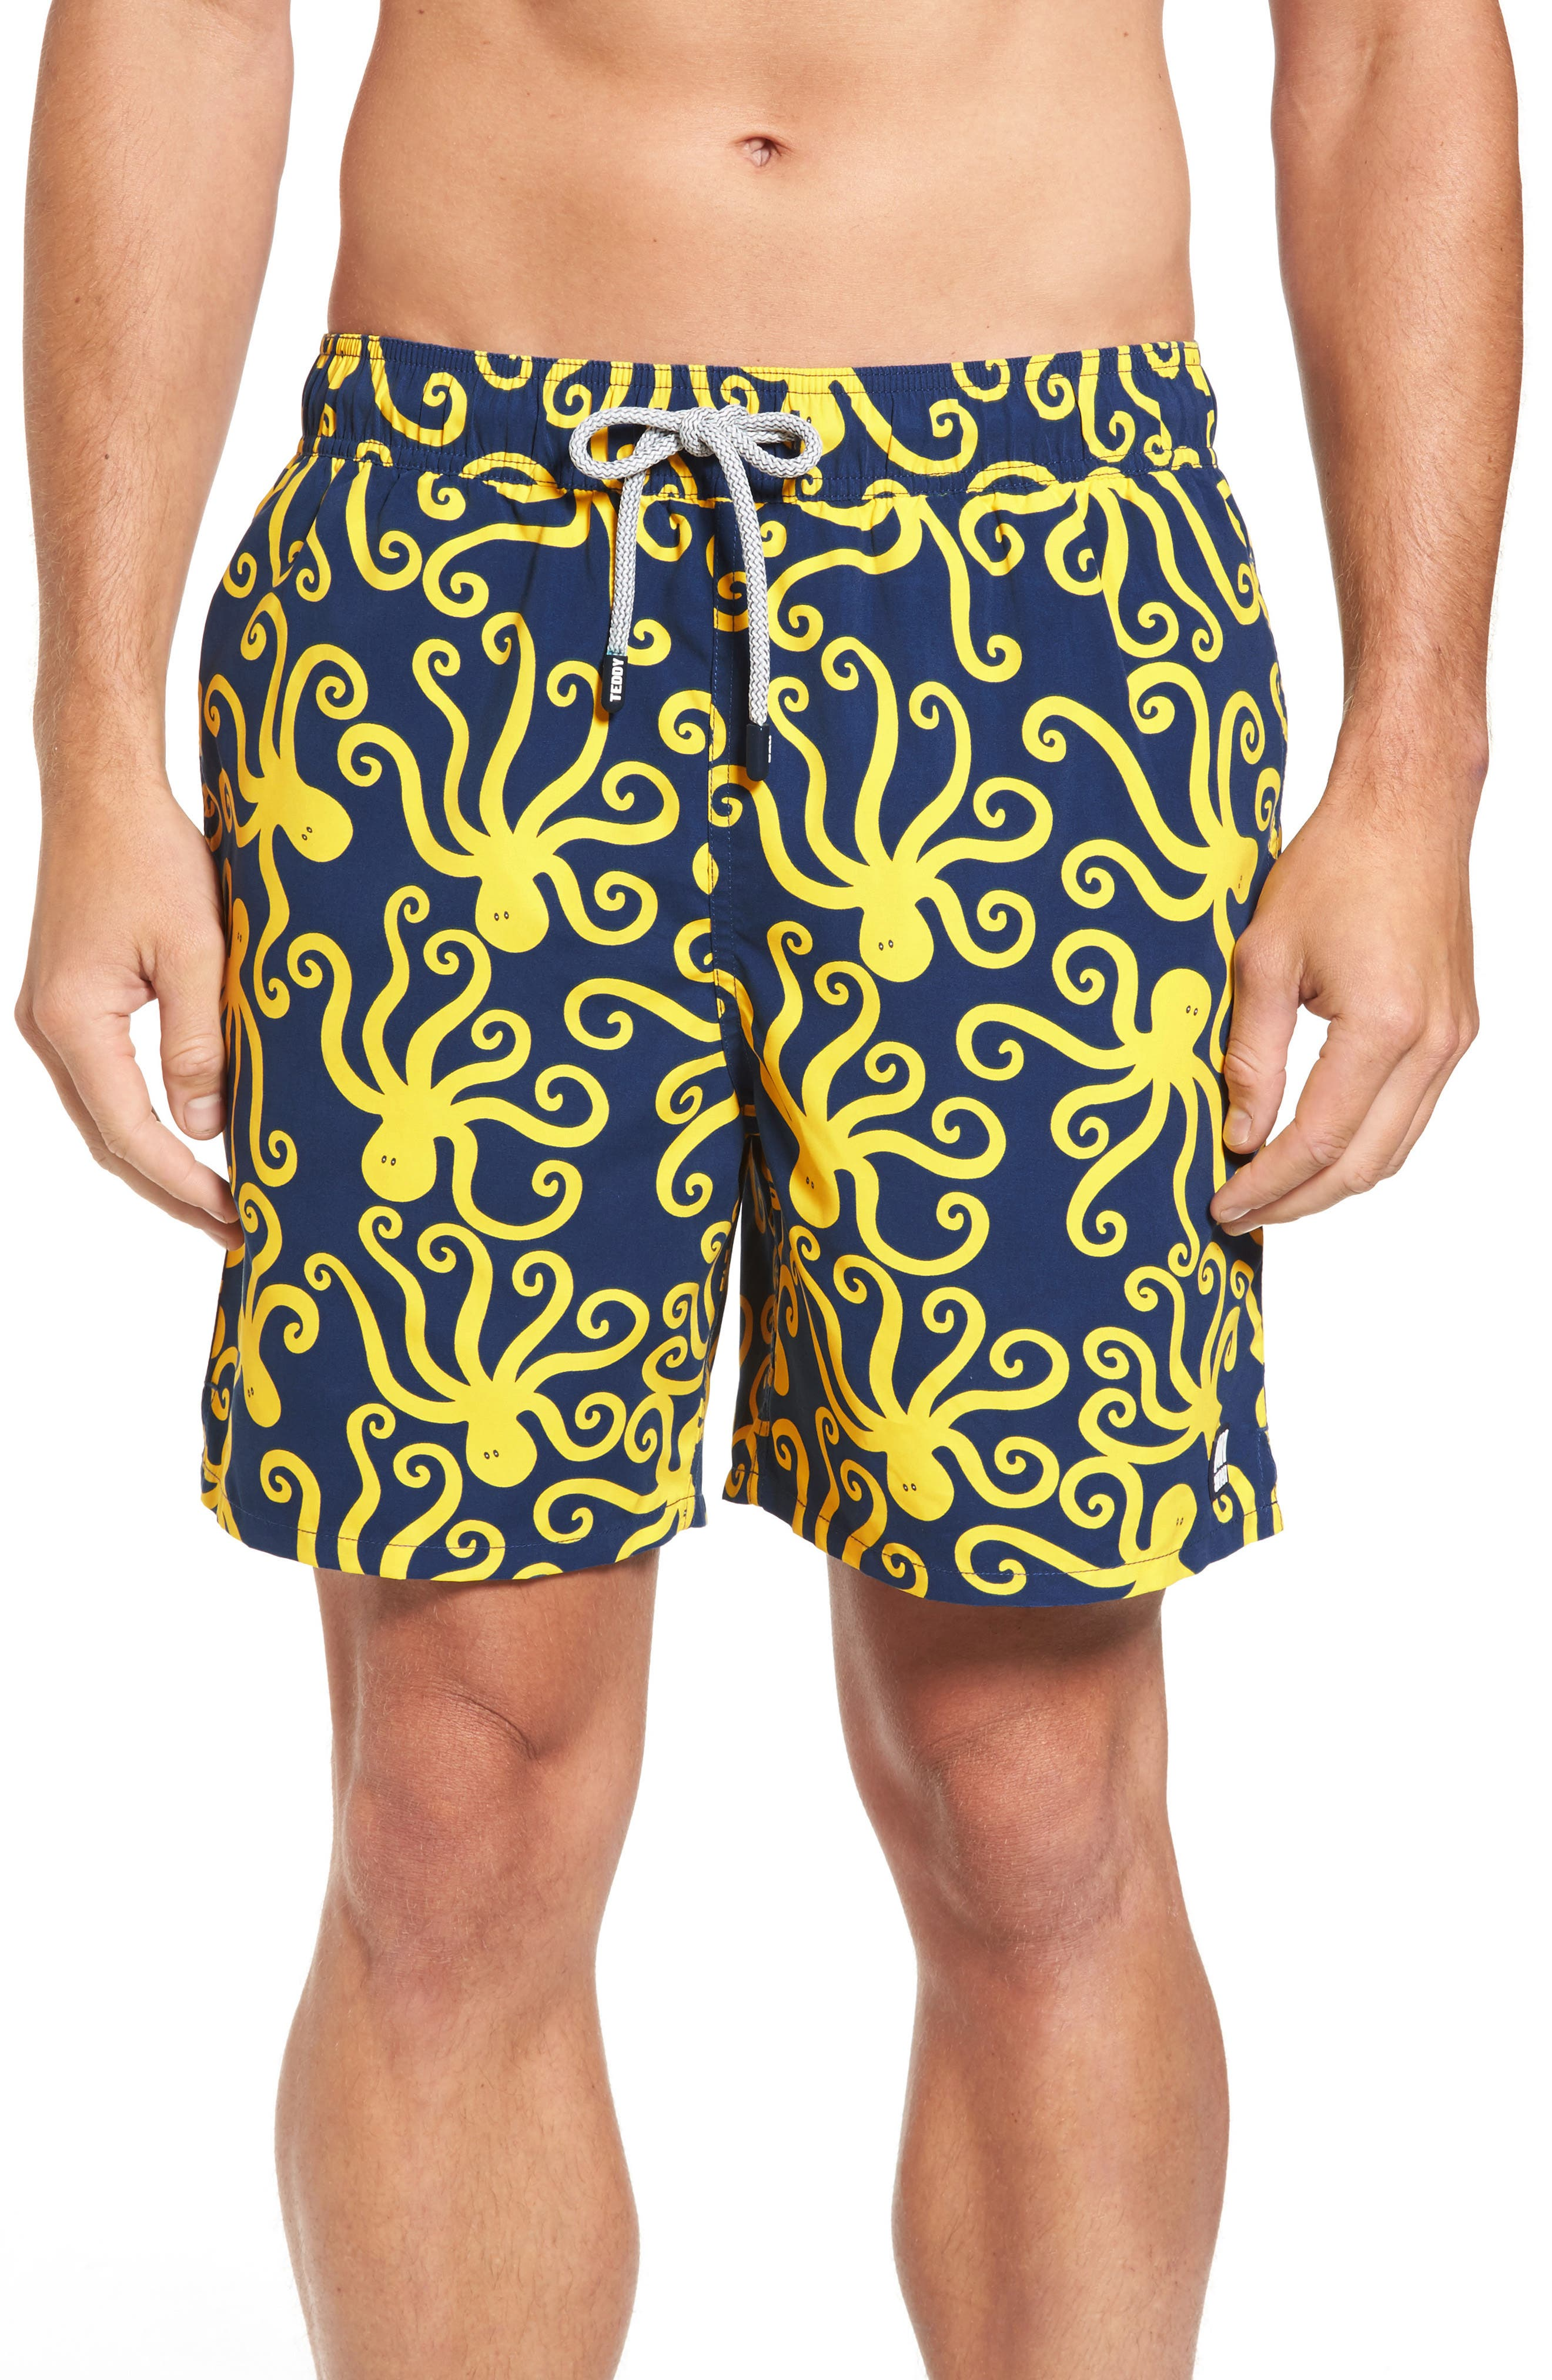 Octopus Swim Trunks,                             Main thumbnail 1, color,                             Blue Yellow